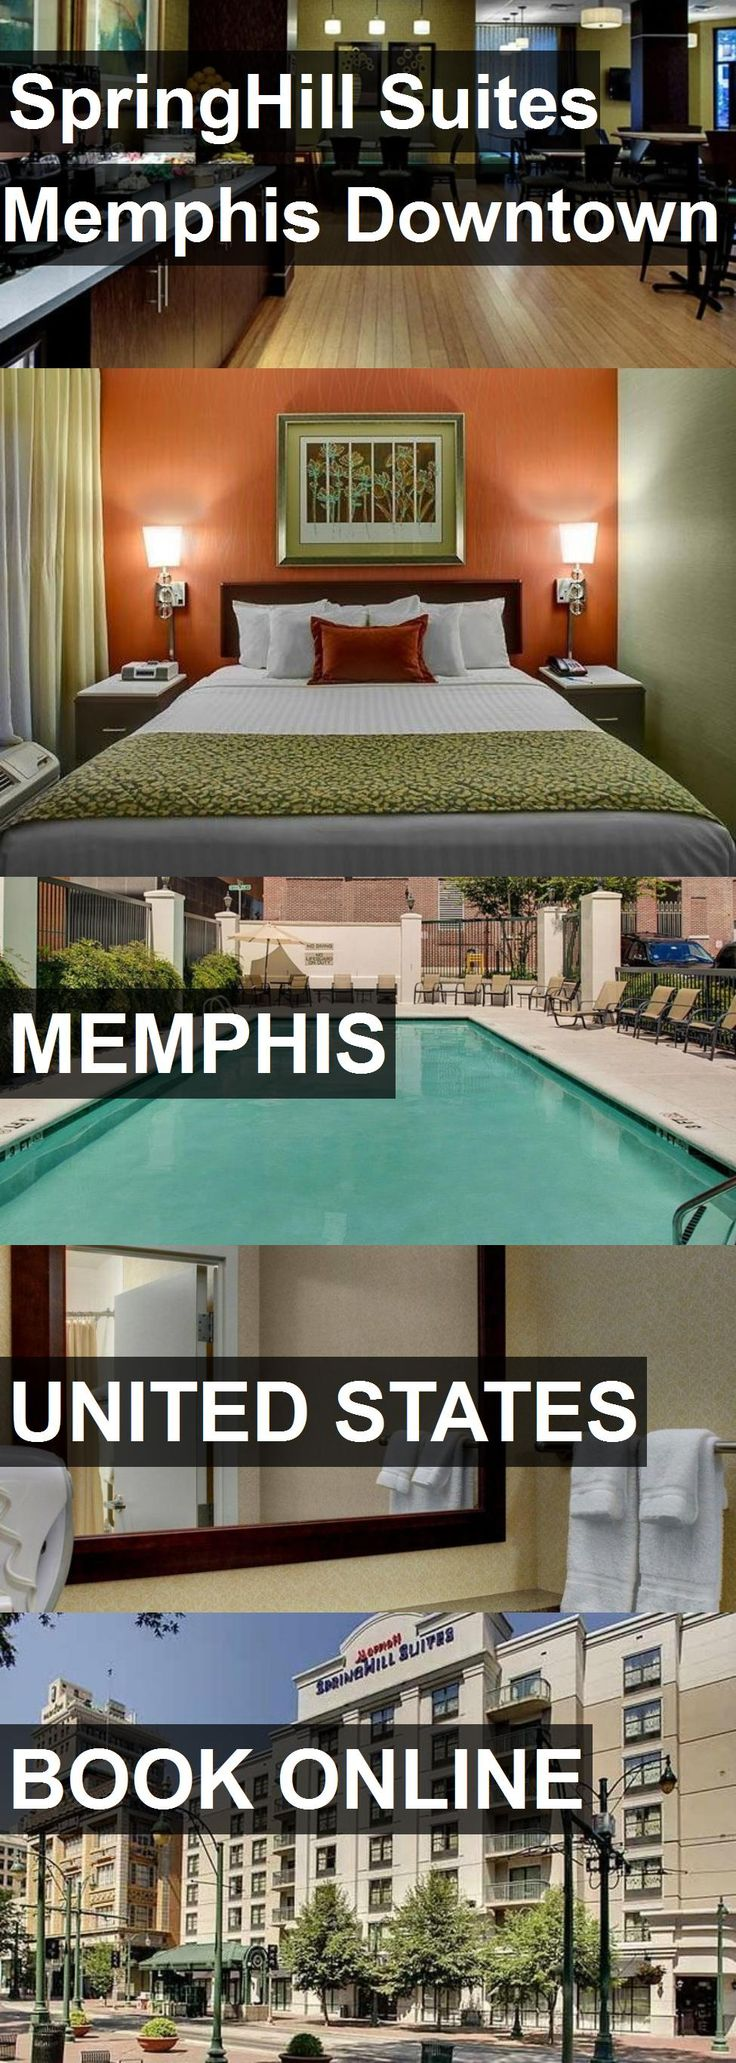 1 bedroom apartments midtown memphis tn%0A Hotel SpringHill Suites Memphis Downtown in Memphis  United States  For  more information  photos